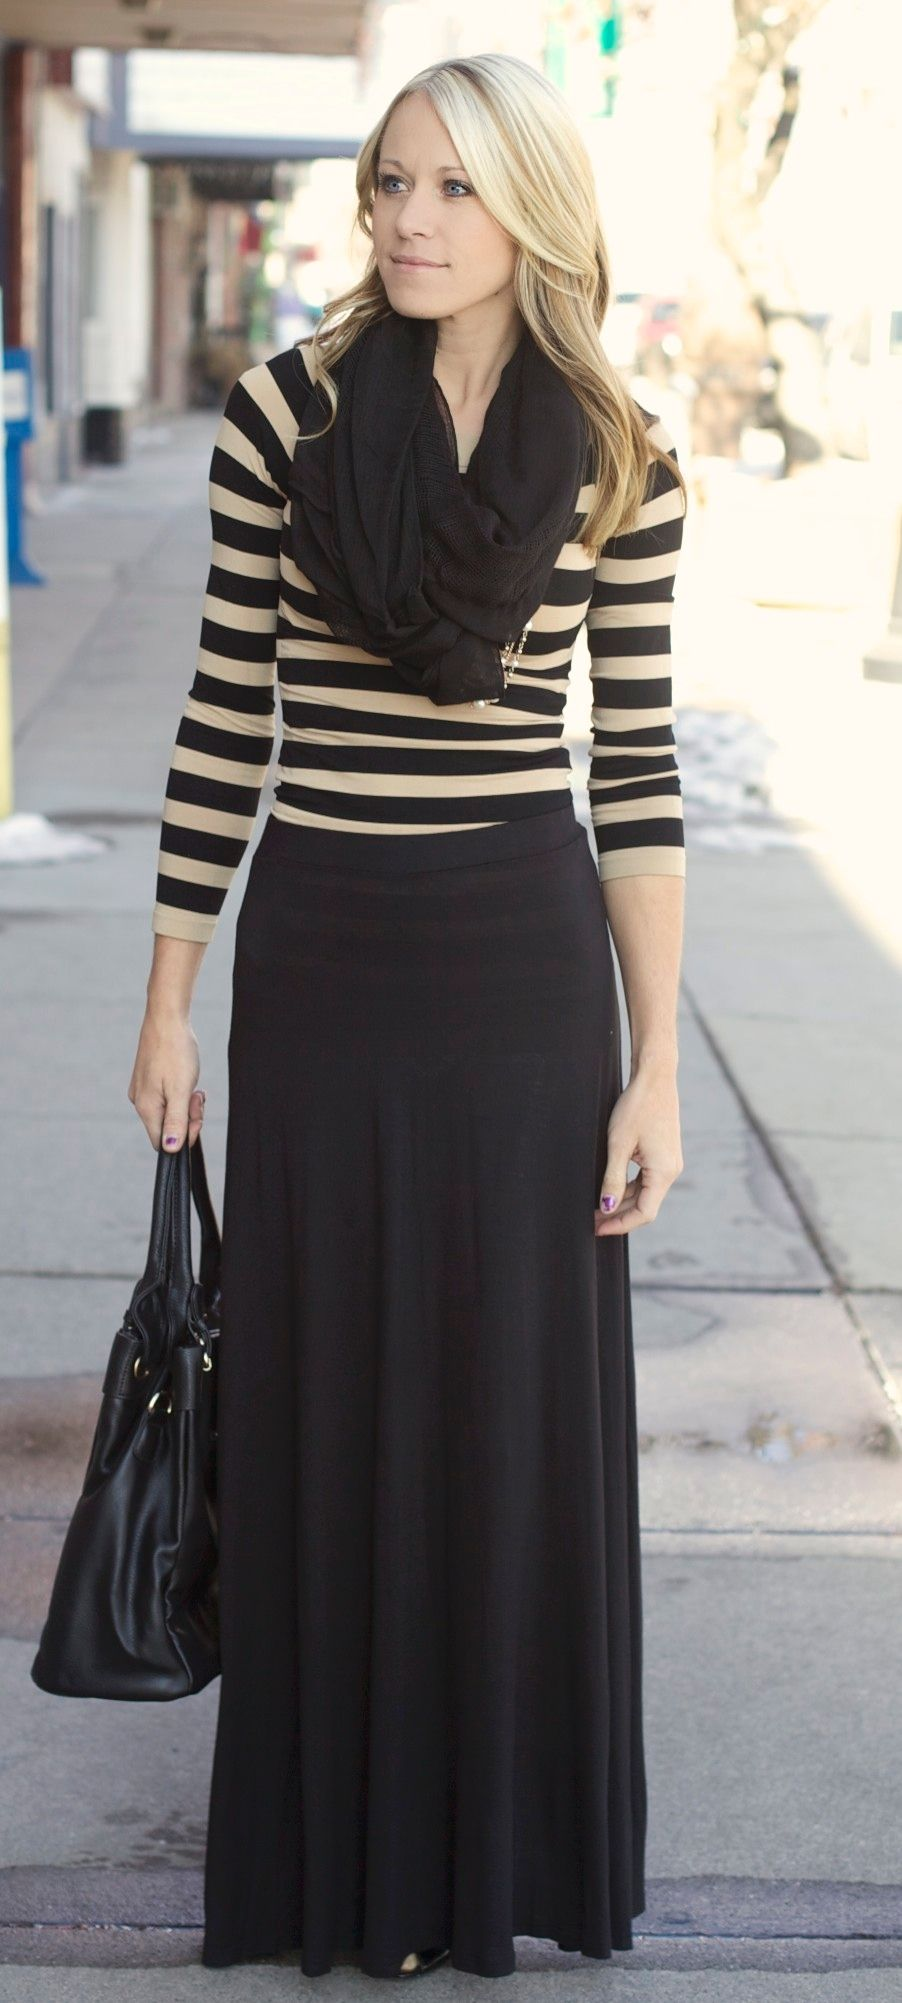 The most fashionable skirts. Fashionable long skirts 14